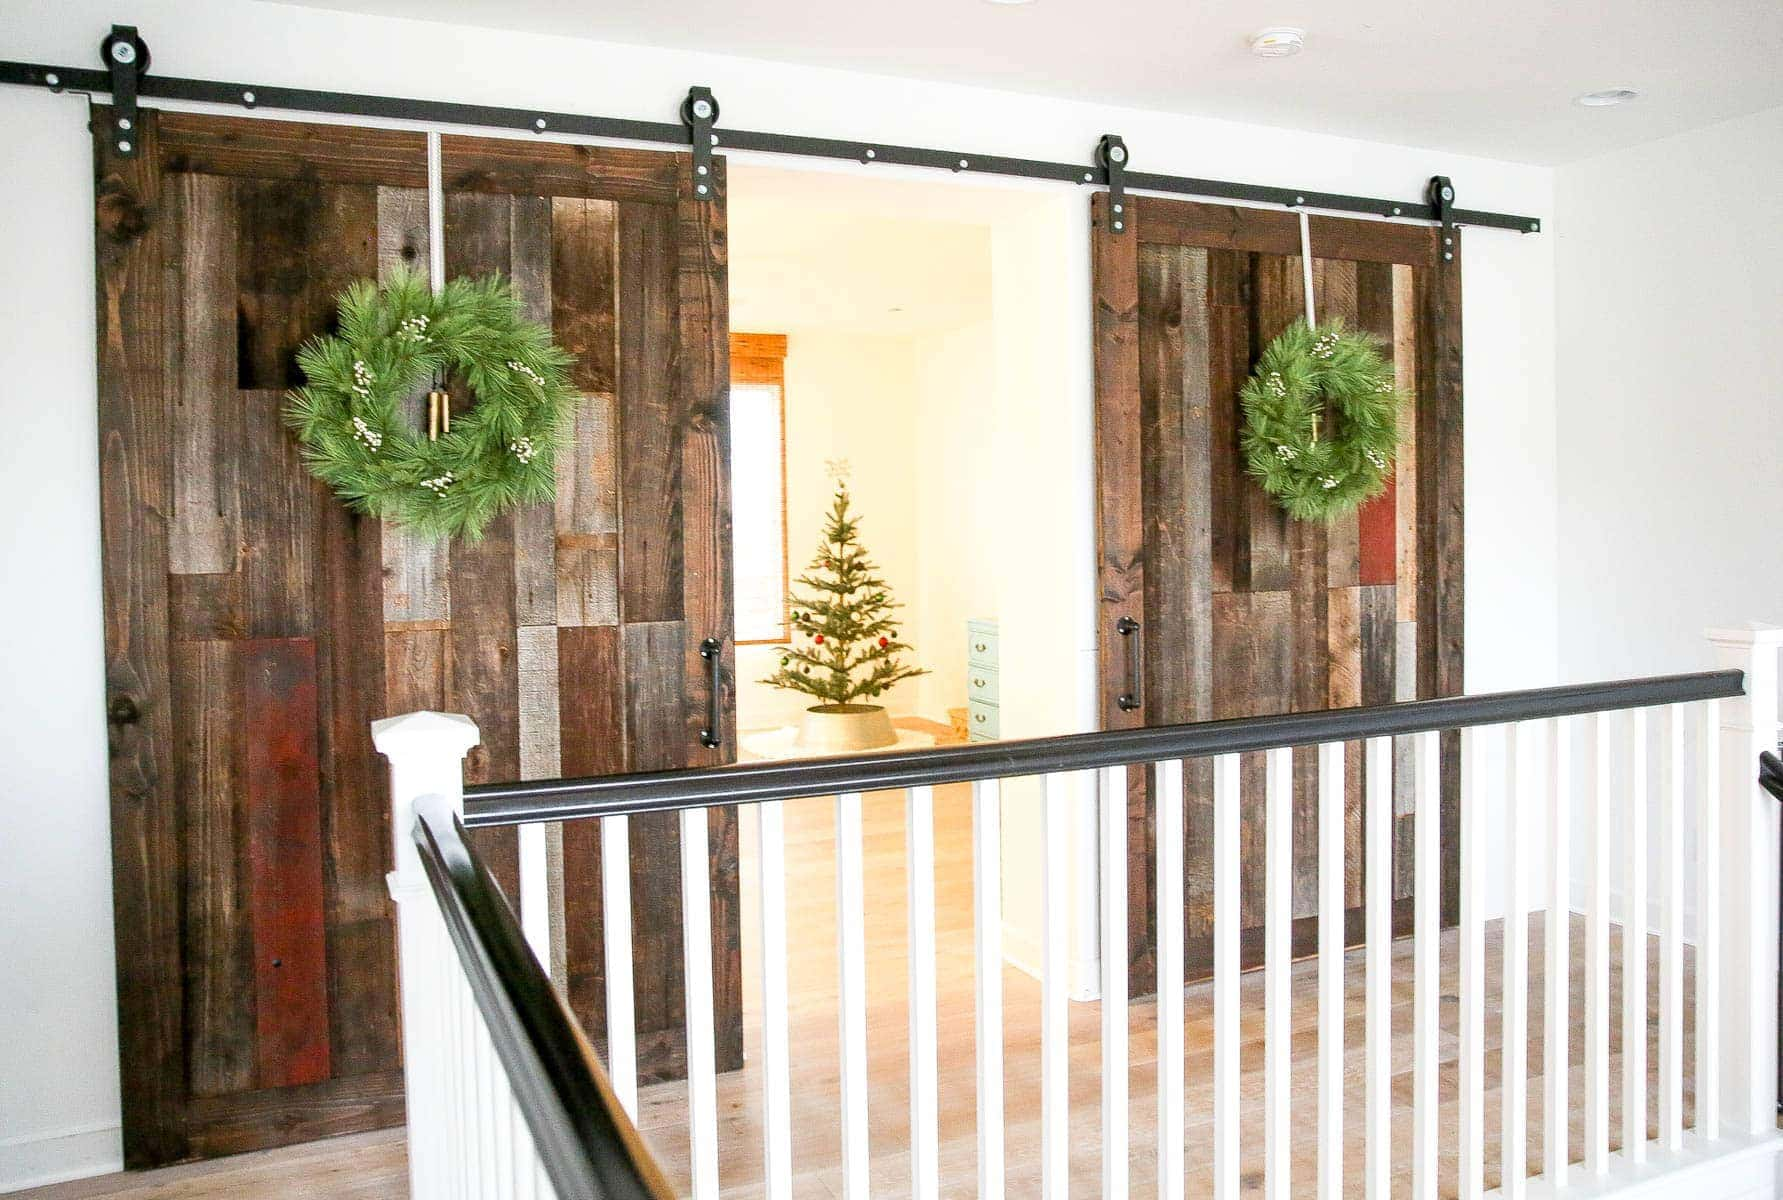 barn doors with christmas wreaths